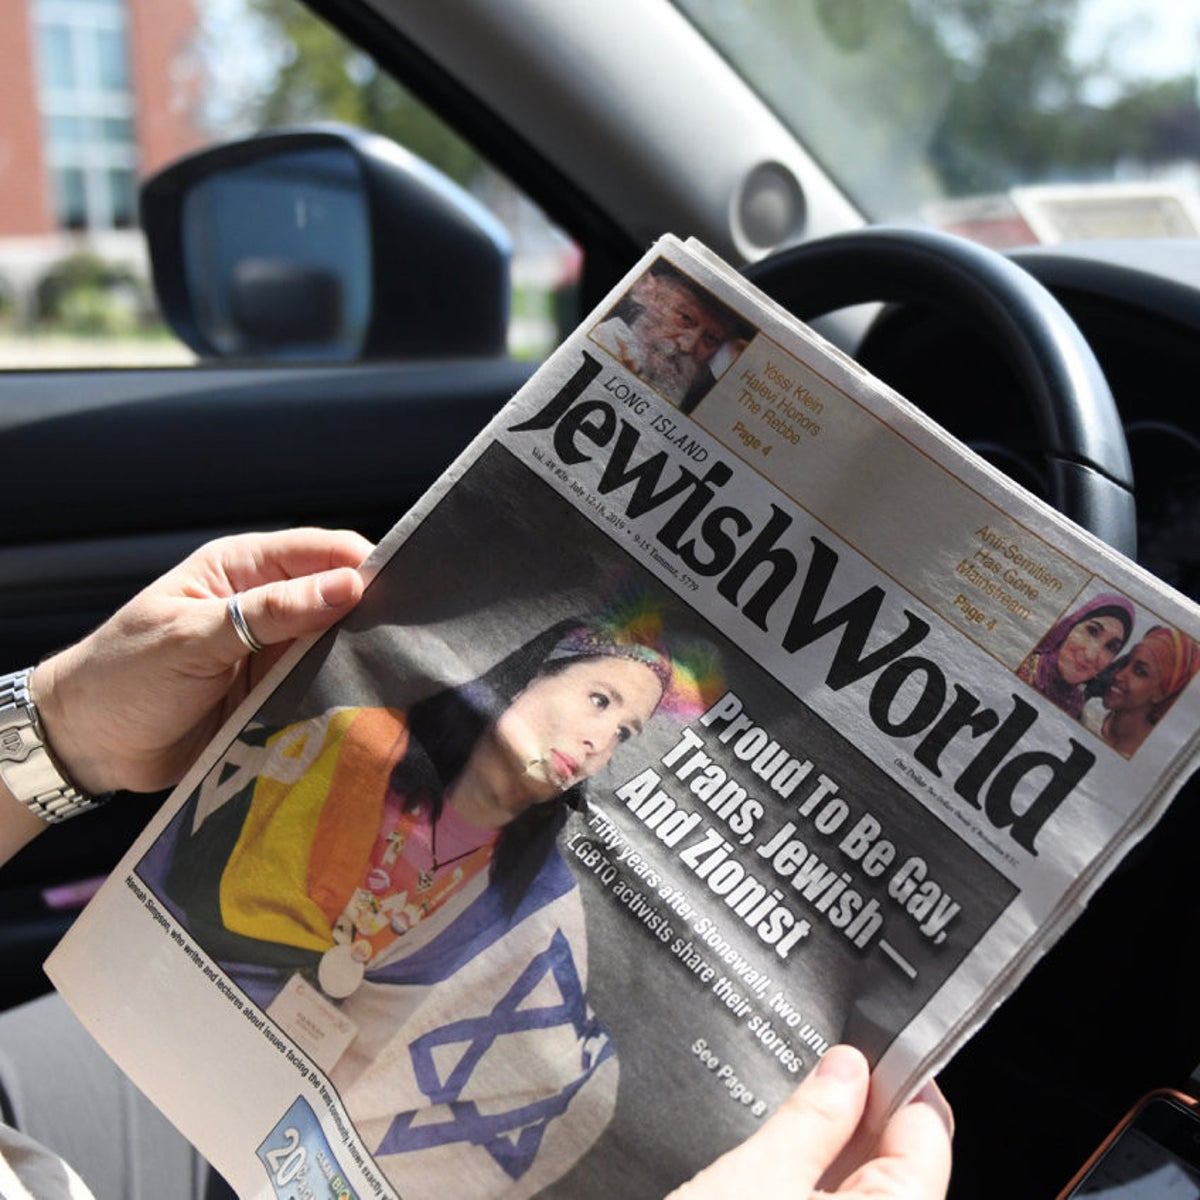 Shlomit Metz-Poolat with a copy of the Long Island Jewish World newspaper that was withdrawn from local restaurants, August 2019.